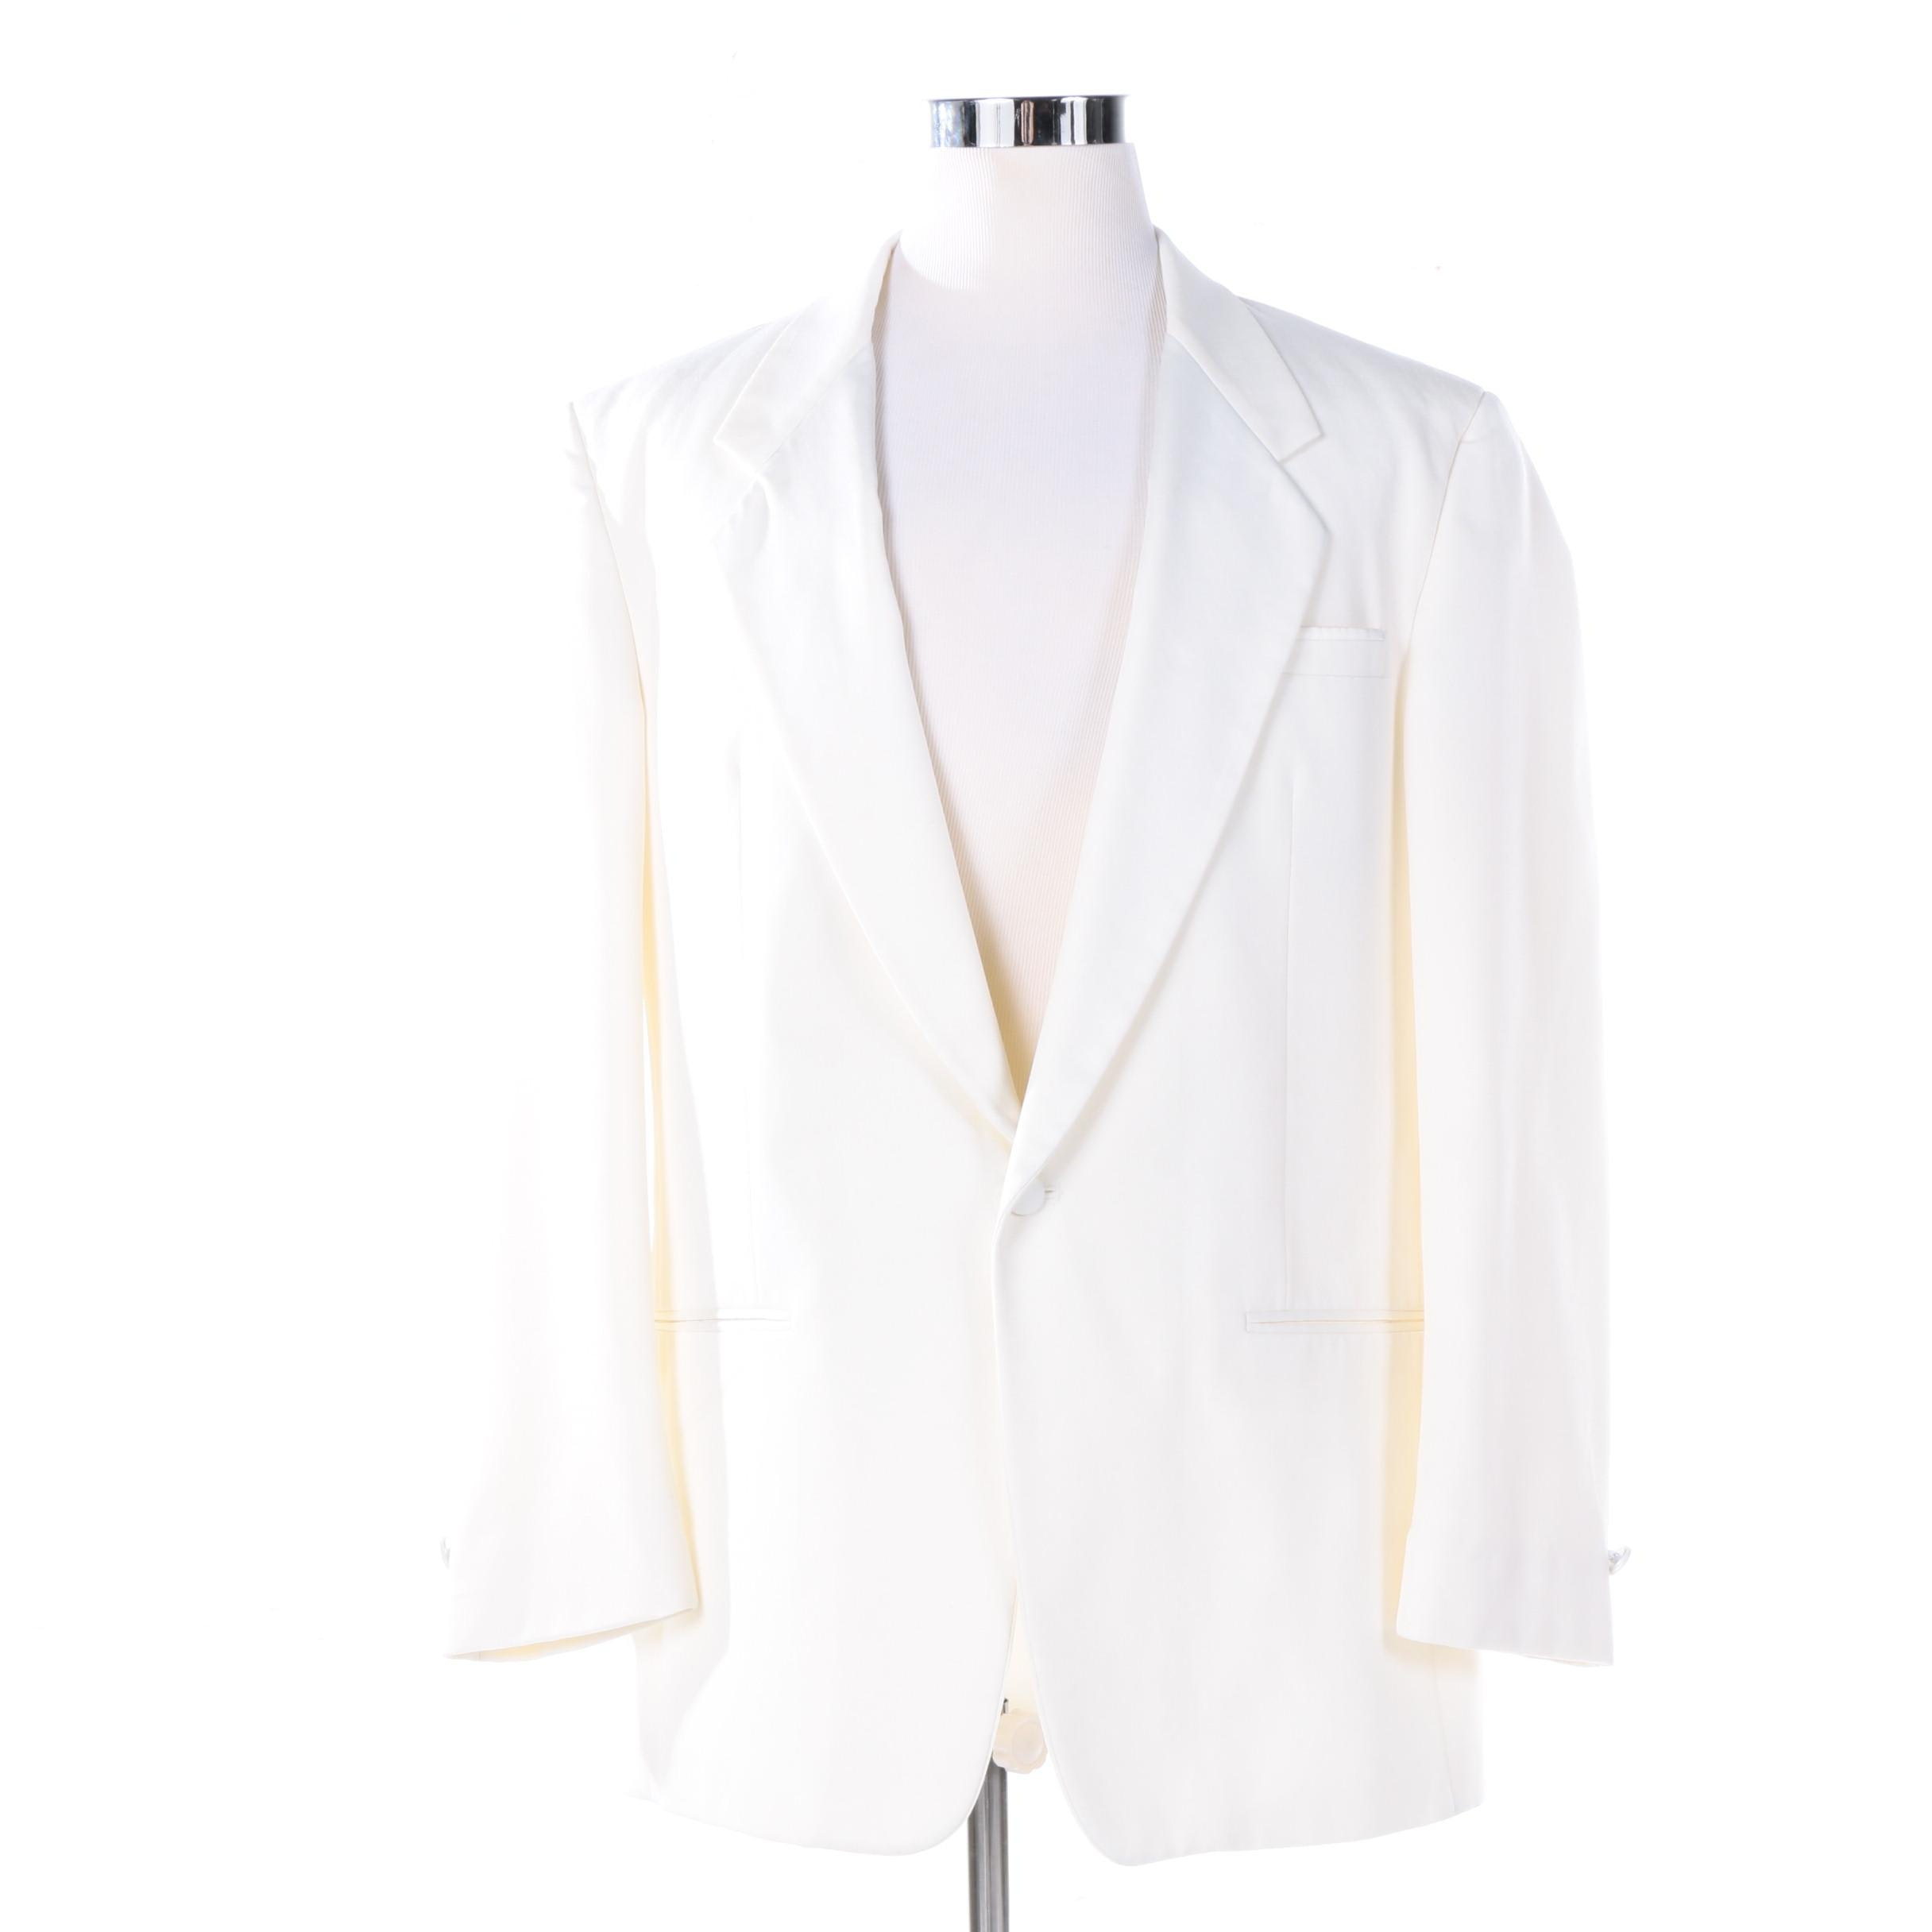 Men's Christian Dior Le Connaisseur White Formal Jacket